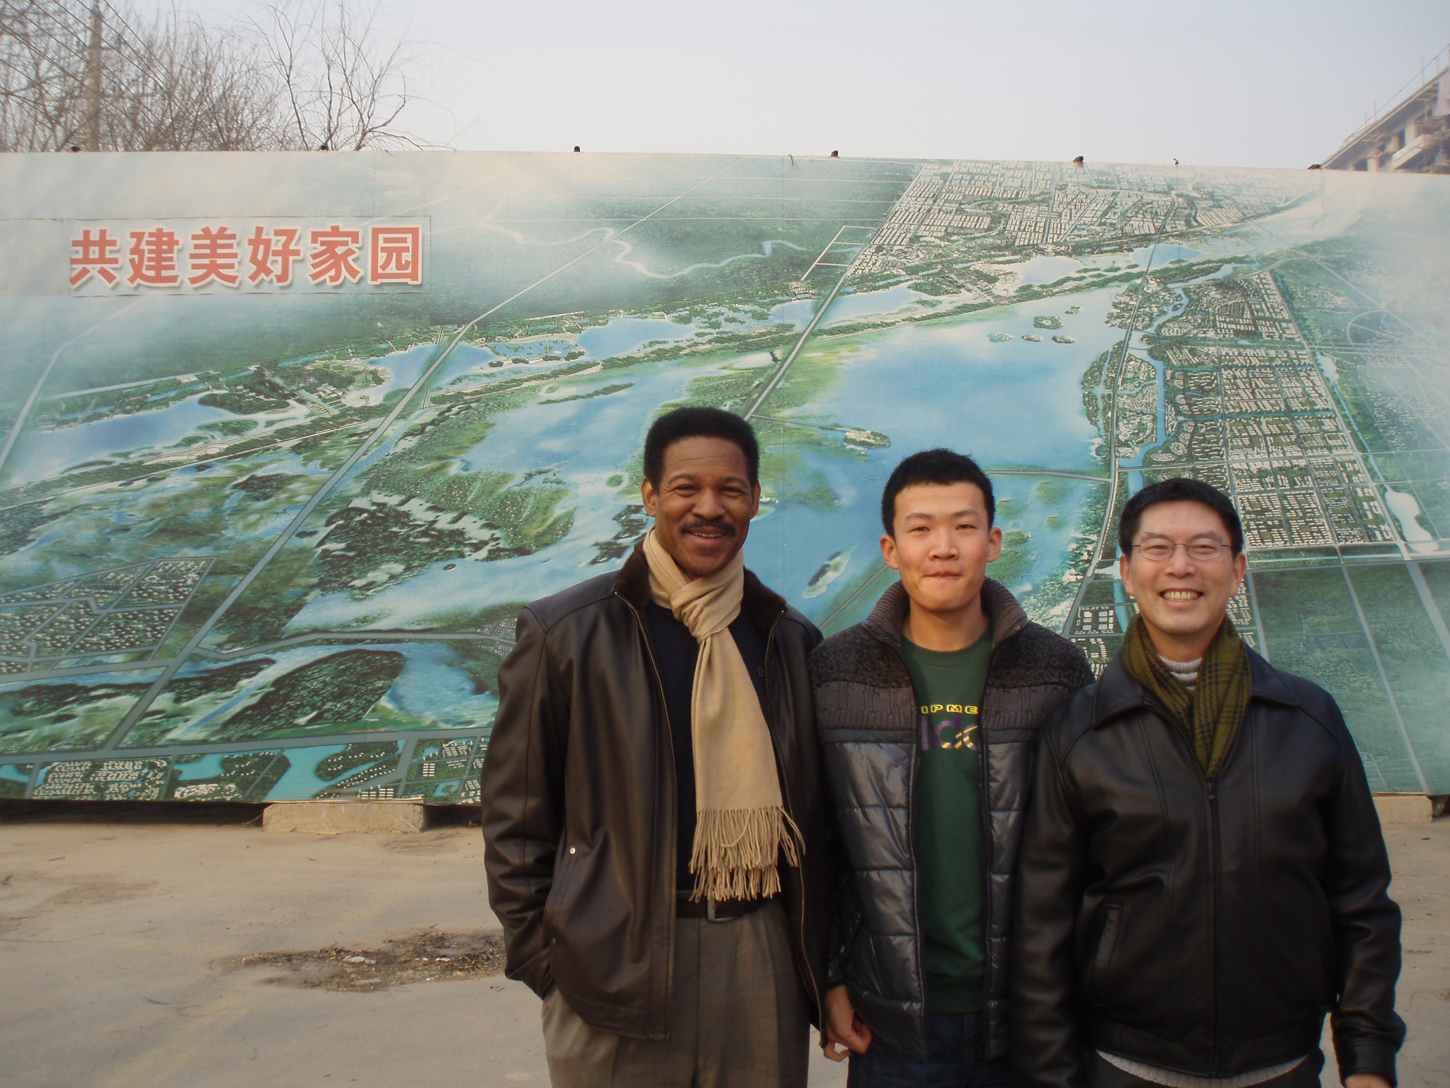 Site Visit #2 - hengshui china